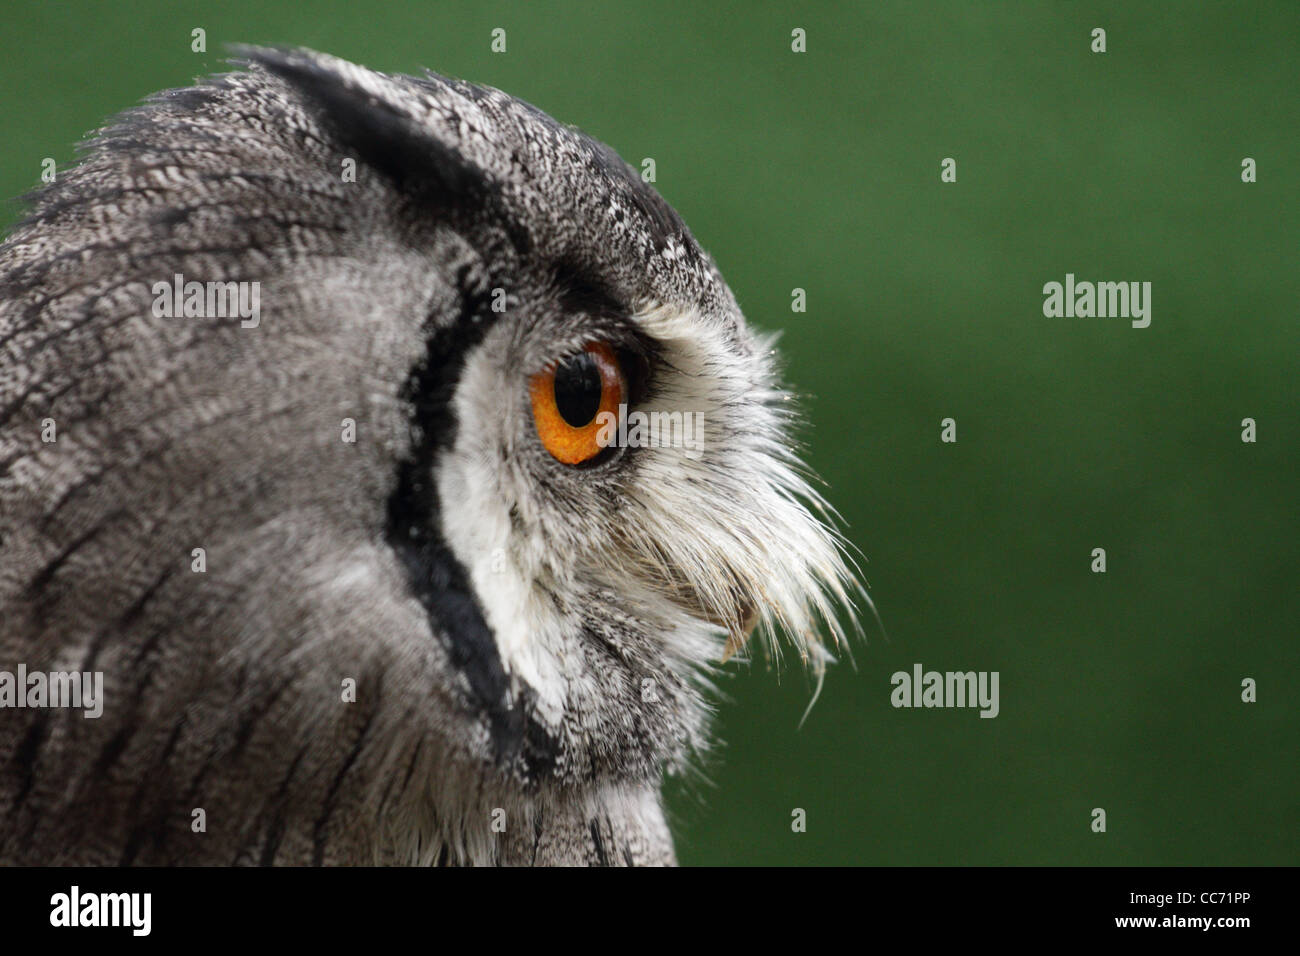 Northern White-faced Owl at Ebbw Vale Owl Sanctuary. - Stock Image